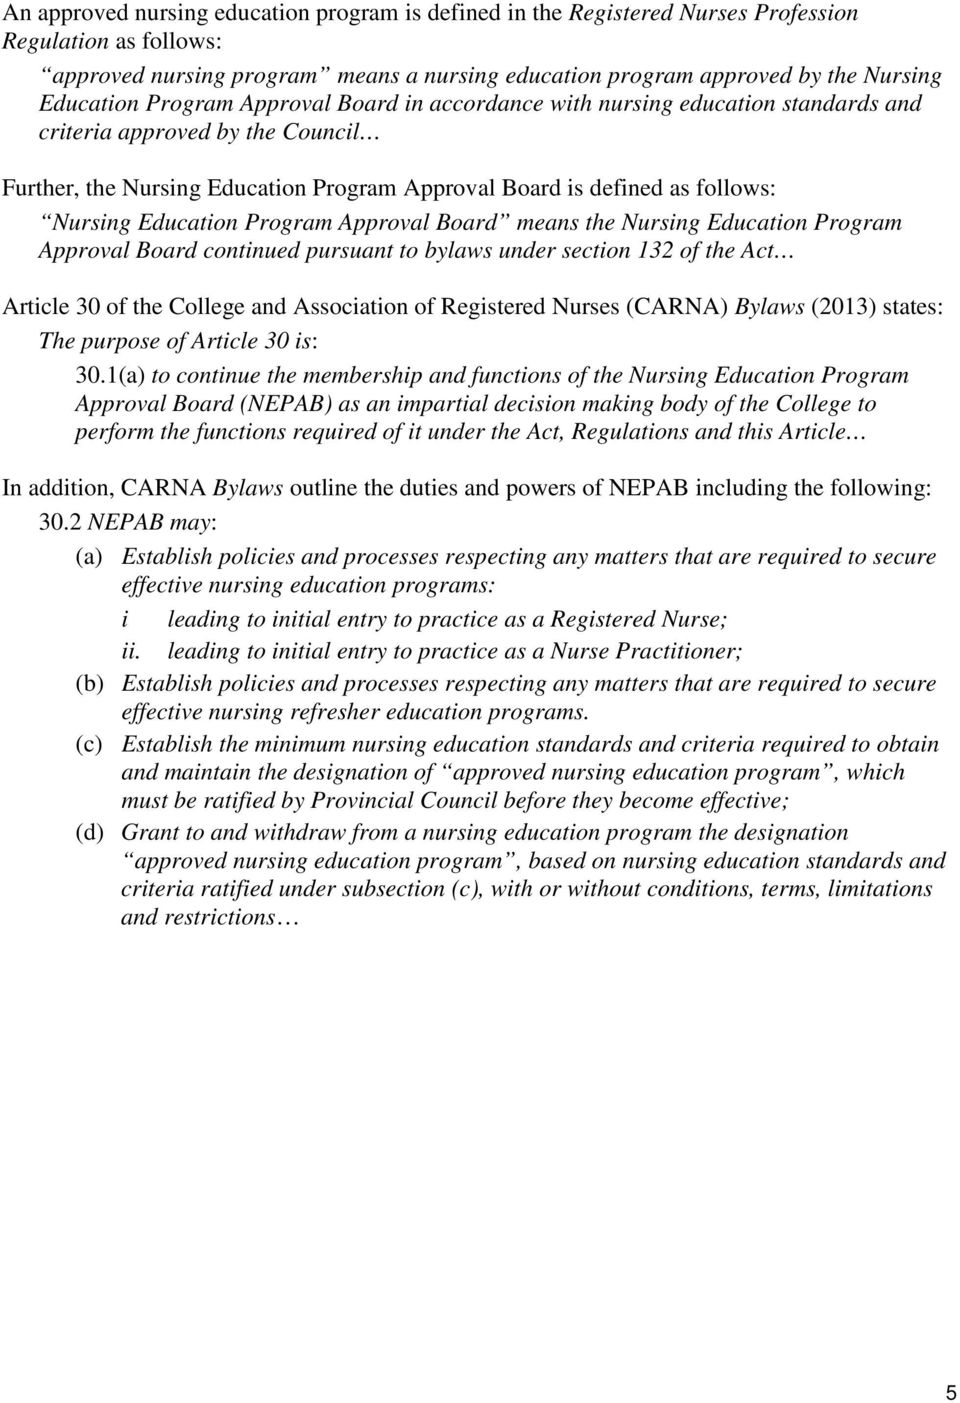 Nursing Education Program Approval Board means the Nursing Education Program Approval Board continued pursuant to bylaws under section 132 of the Act Article 30 of the College and Association of